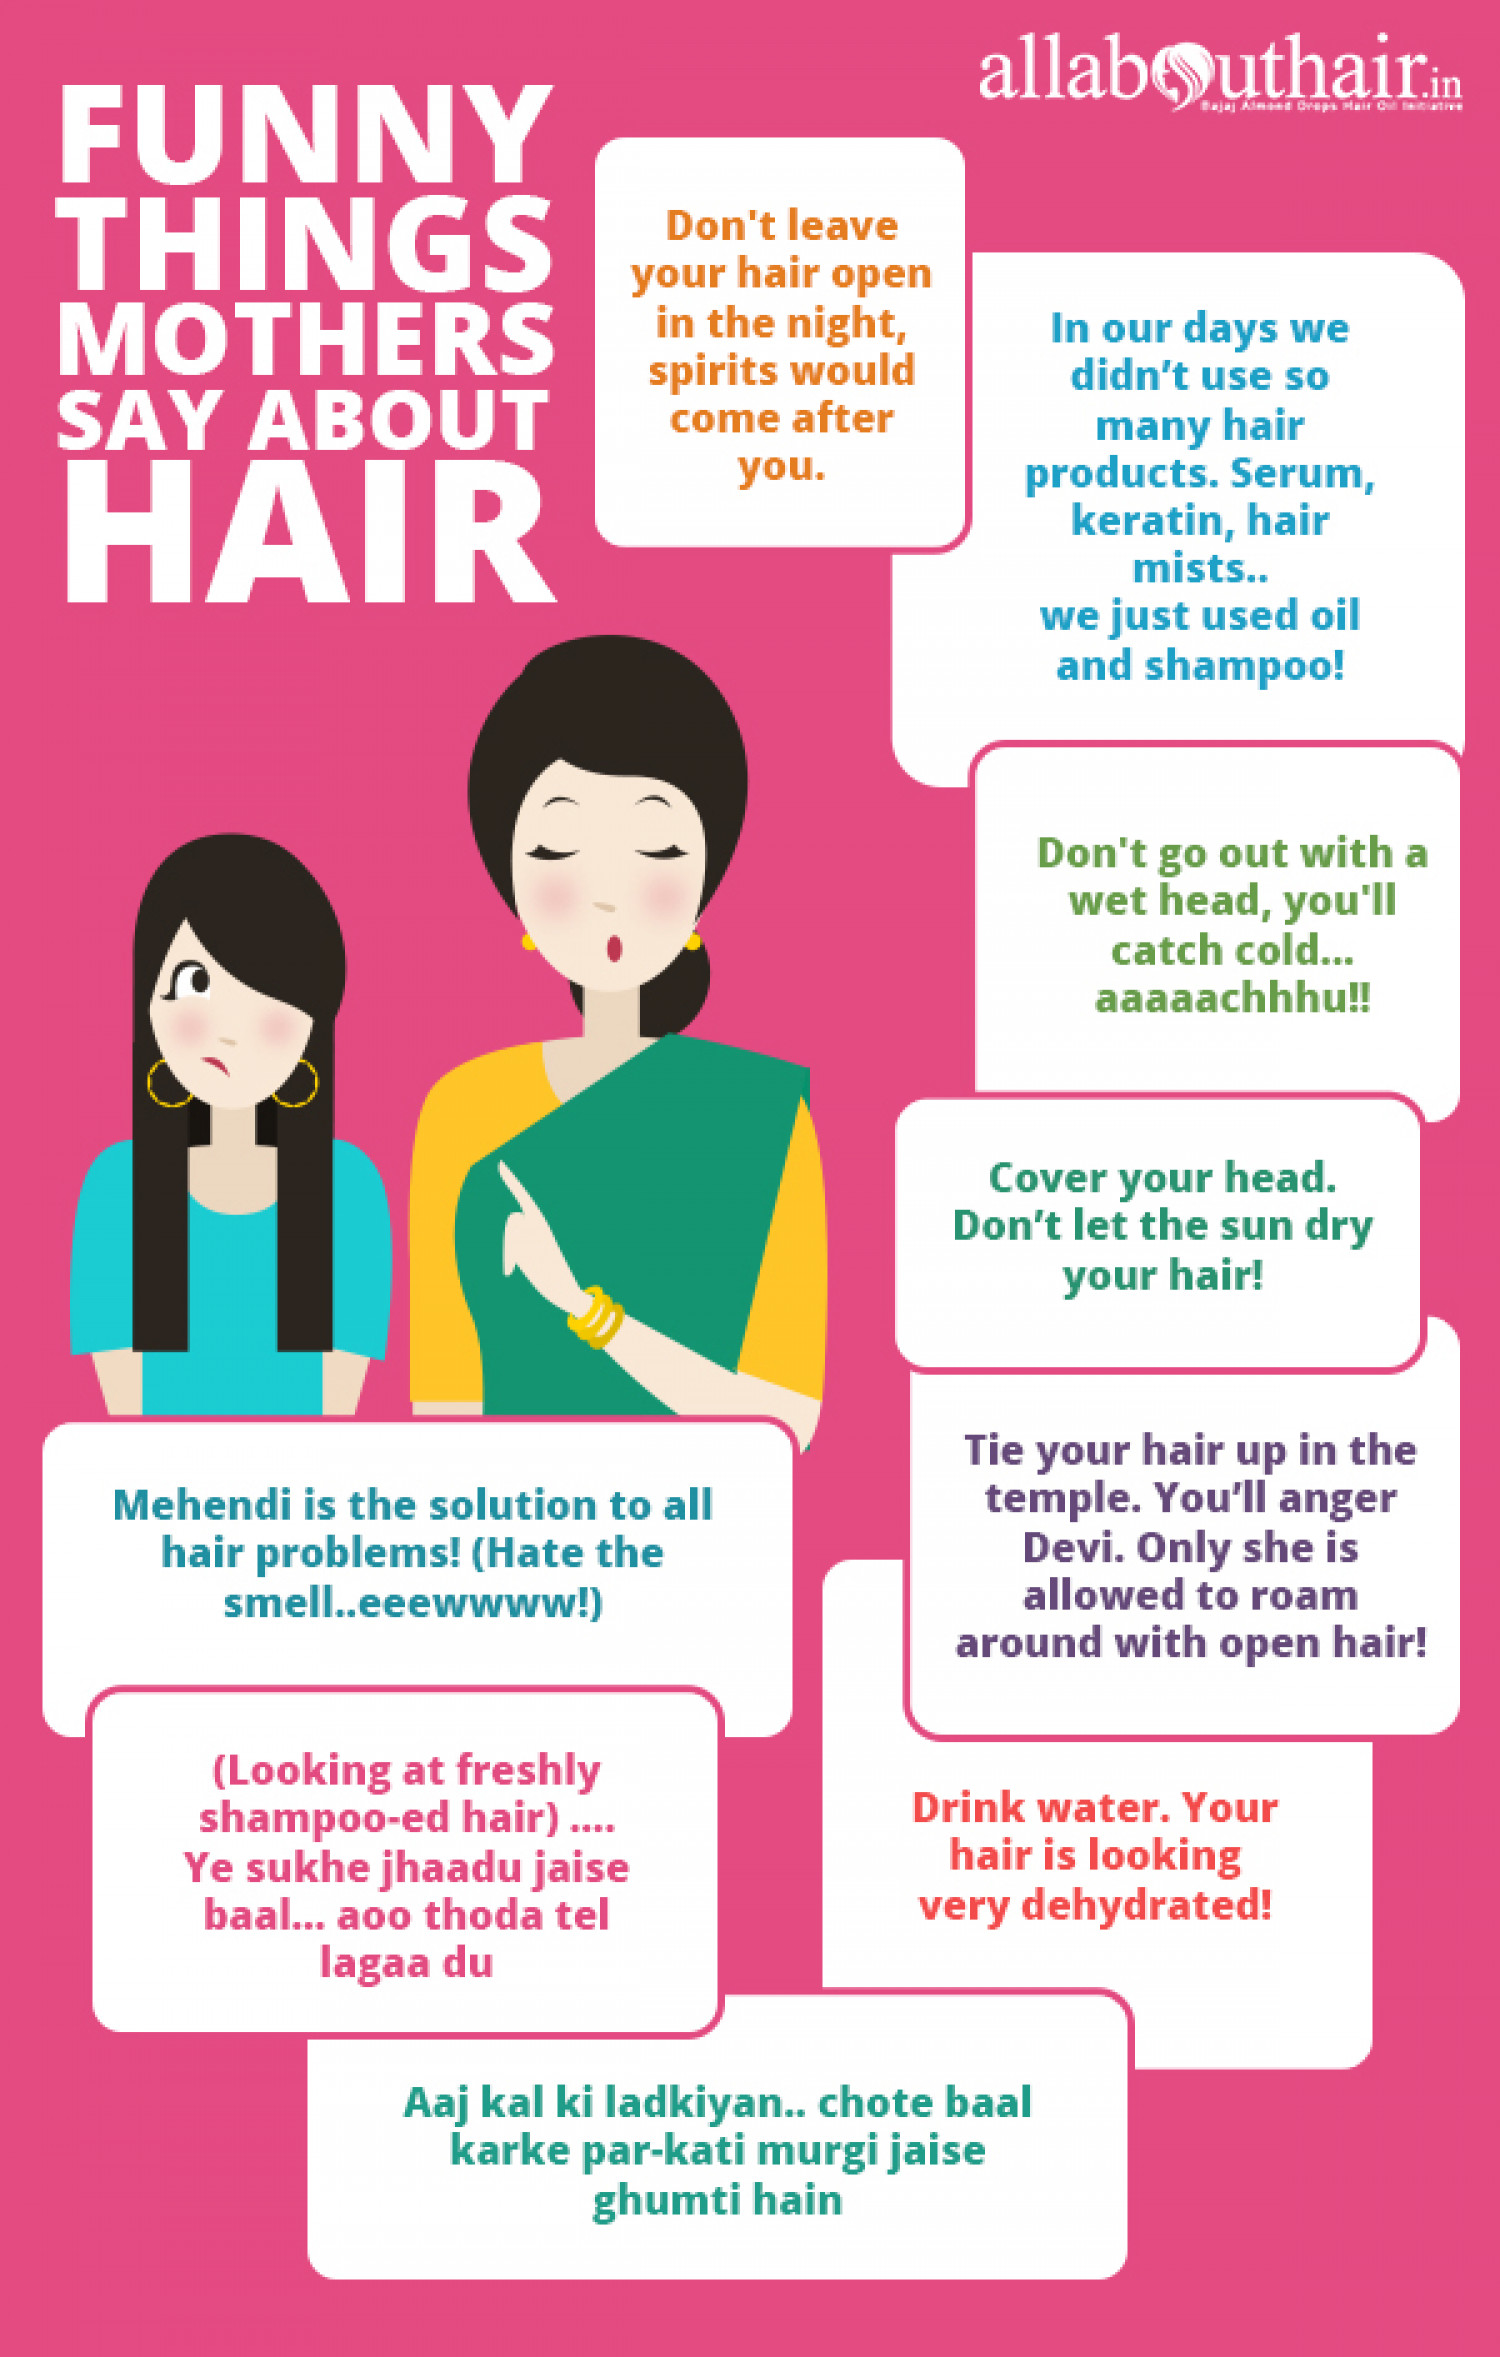 Funny Things Mothers Say About Hair Infographic